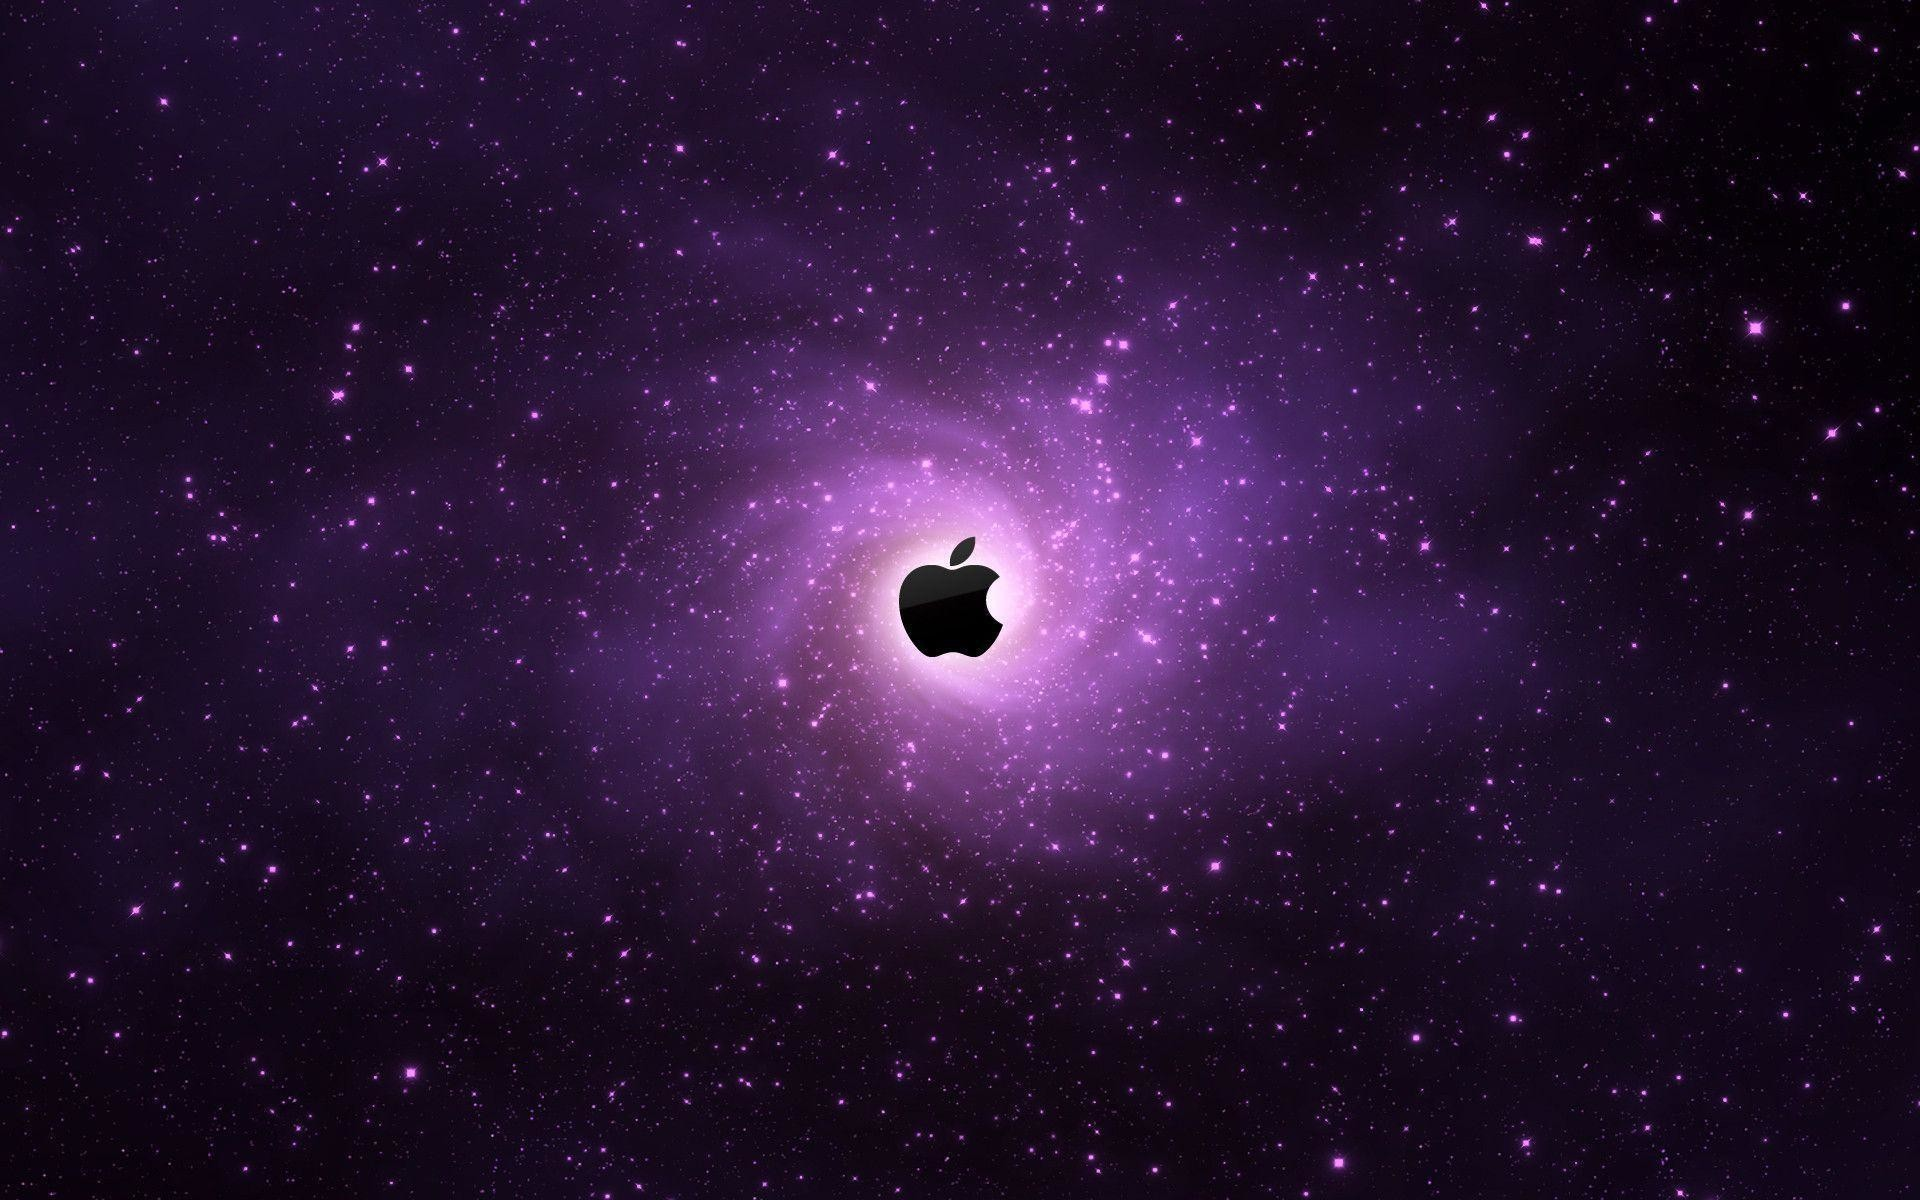 purple apple wallpaper ·①